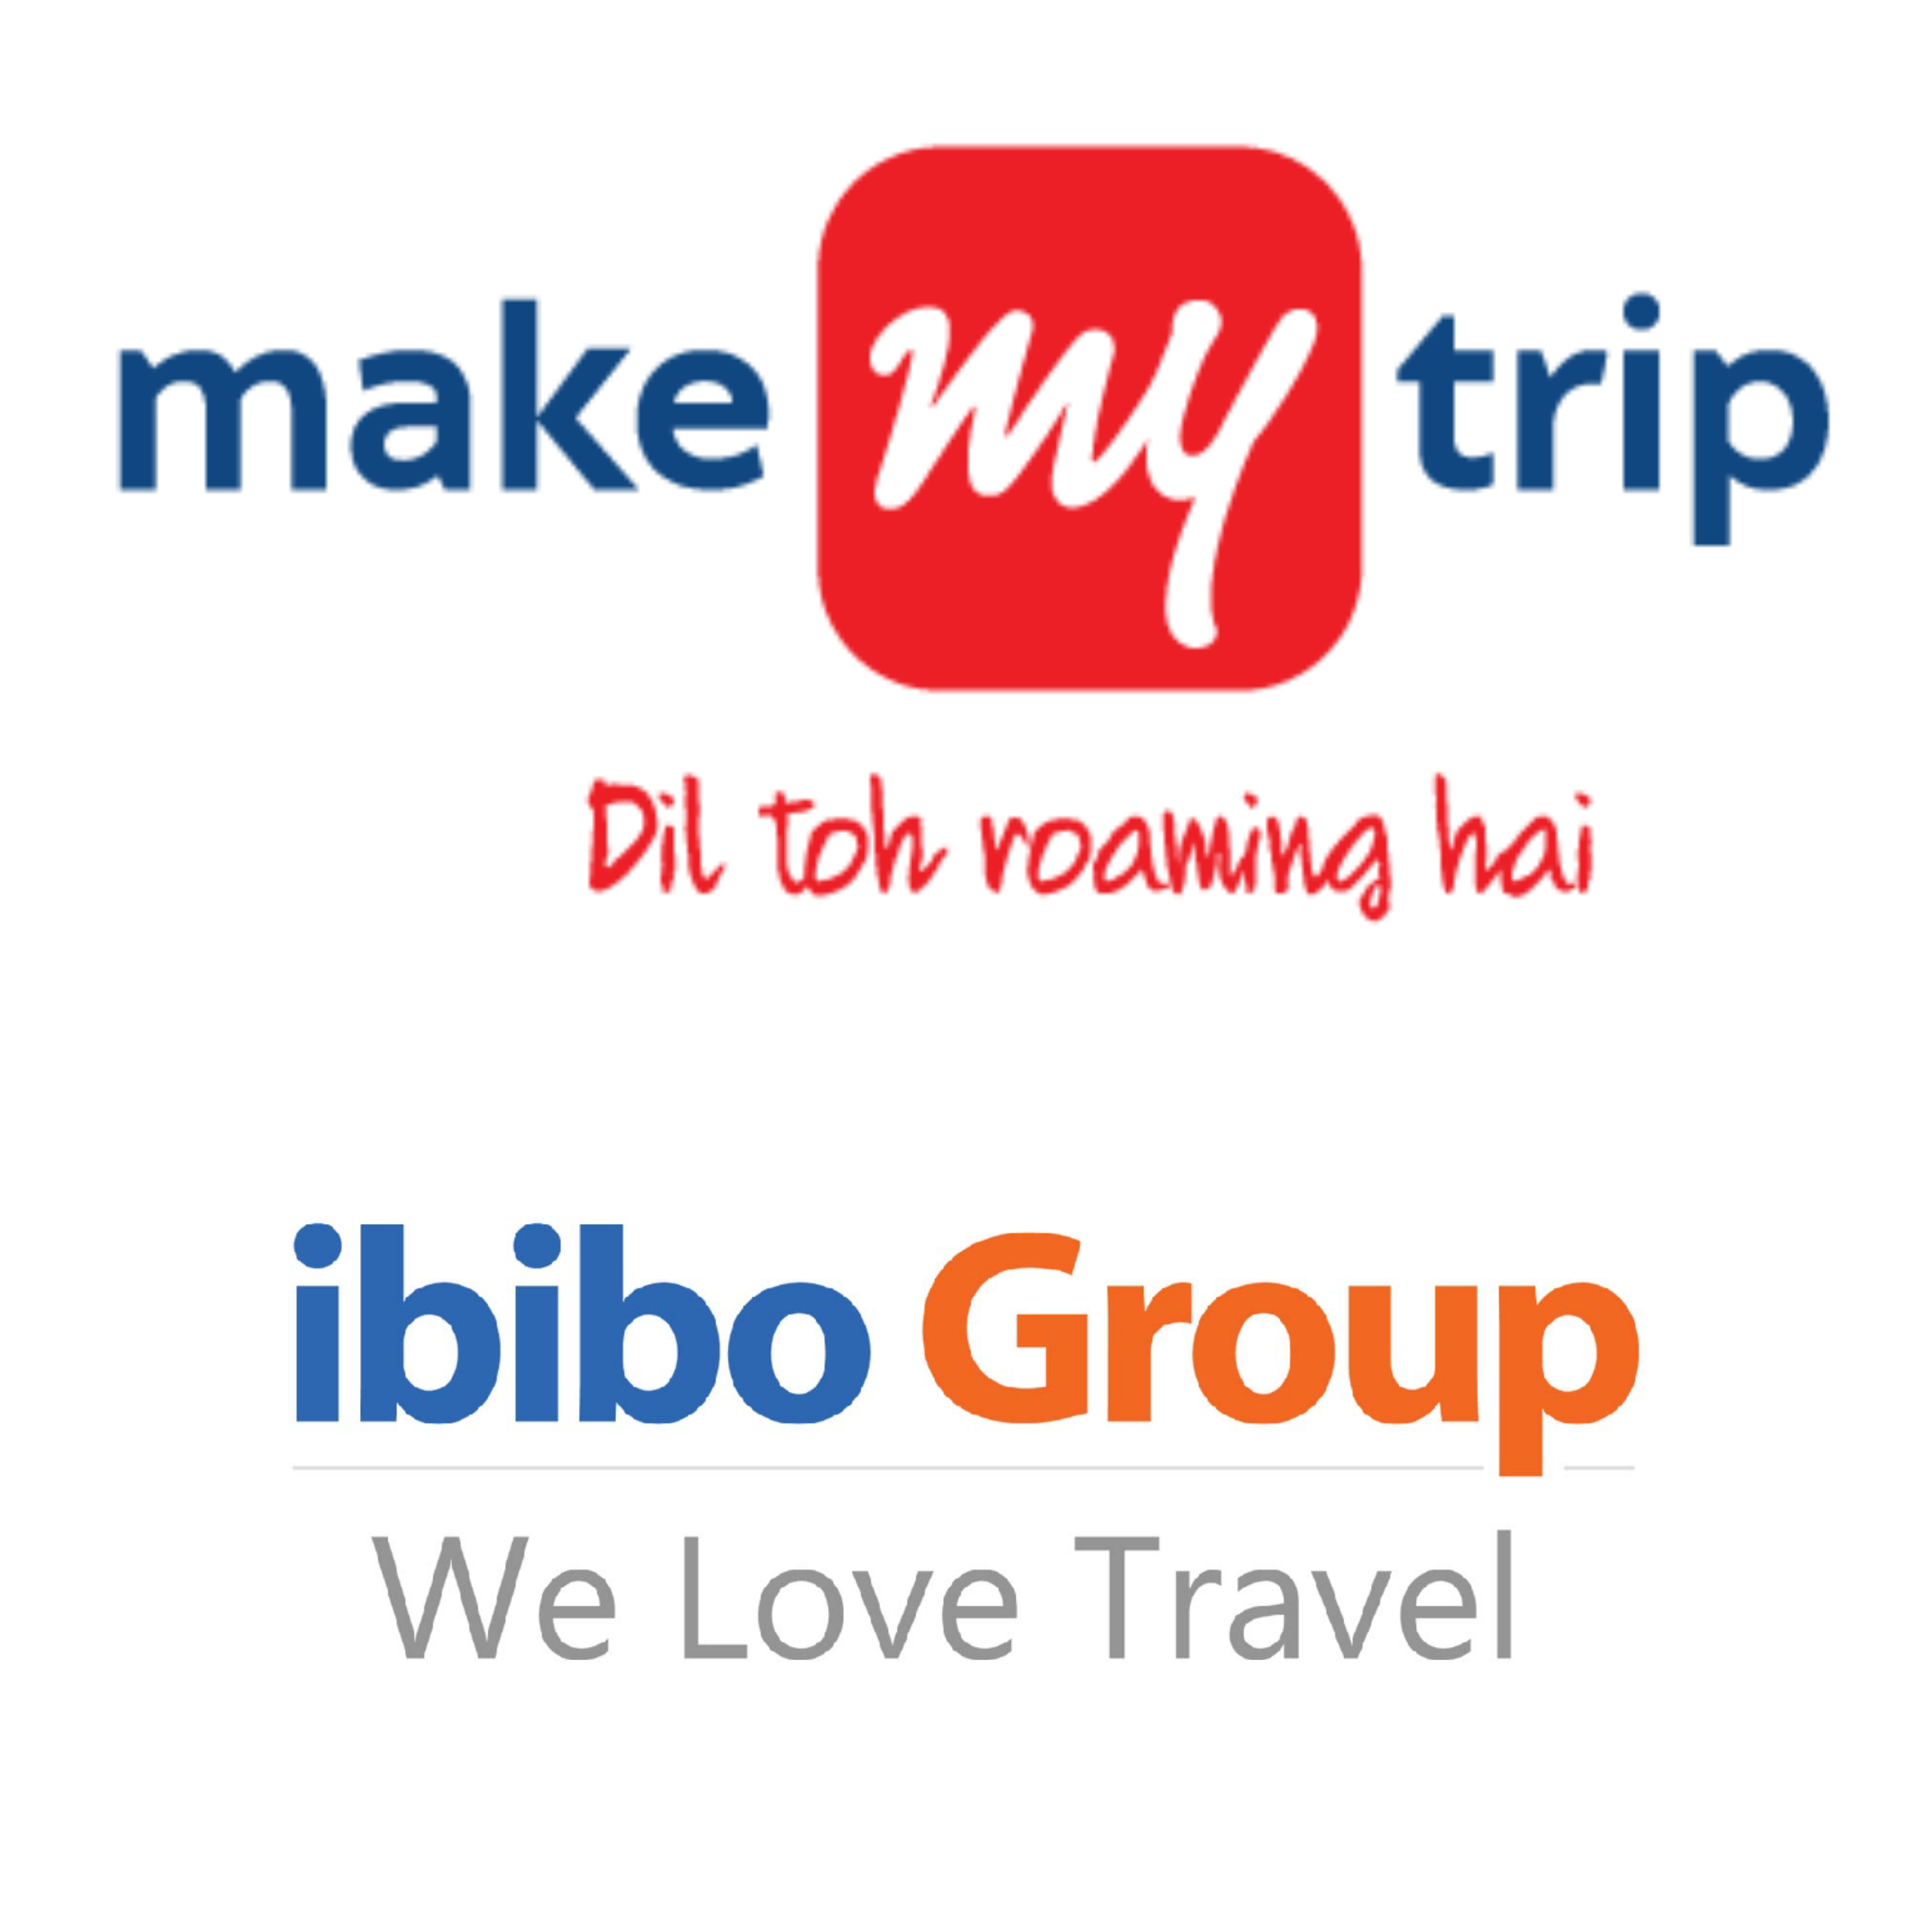 While booking flights with MakeMyTrip, you can expect the ultimate online booking experience. With premium customer service, 24/7 dedicated helpline for support, and over 5 million delighted customers, MakeMyTrip takes great pride in enabling customer satisfaction. With a cheapest flight guarantee, book your tickets at the lowest airfares.